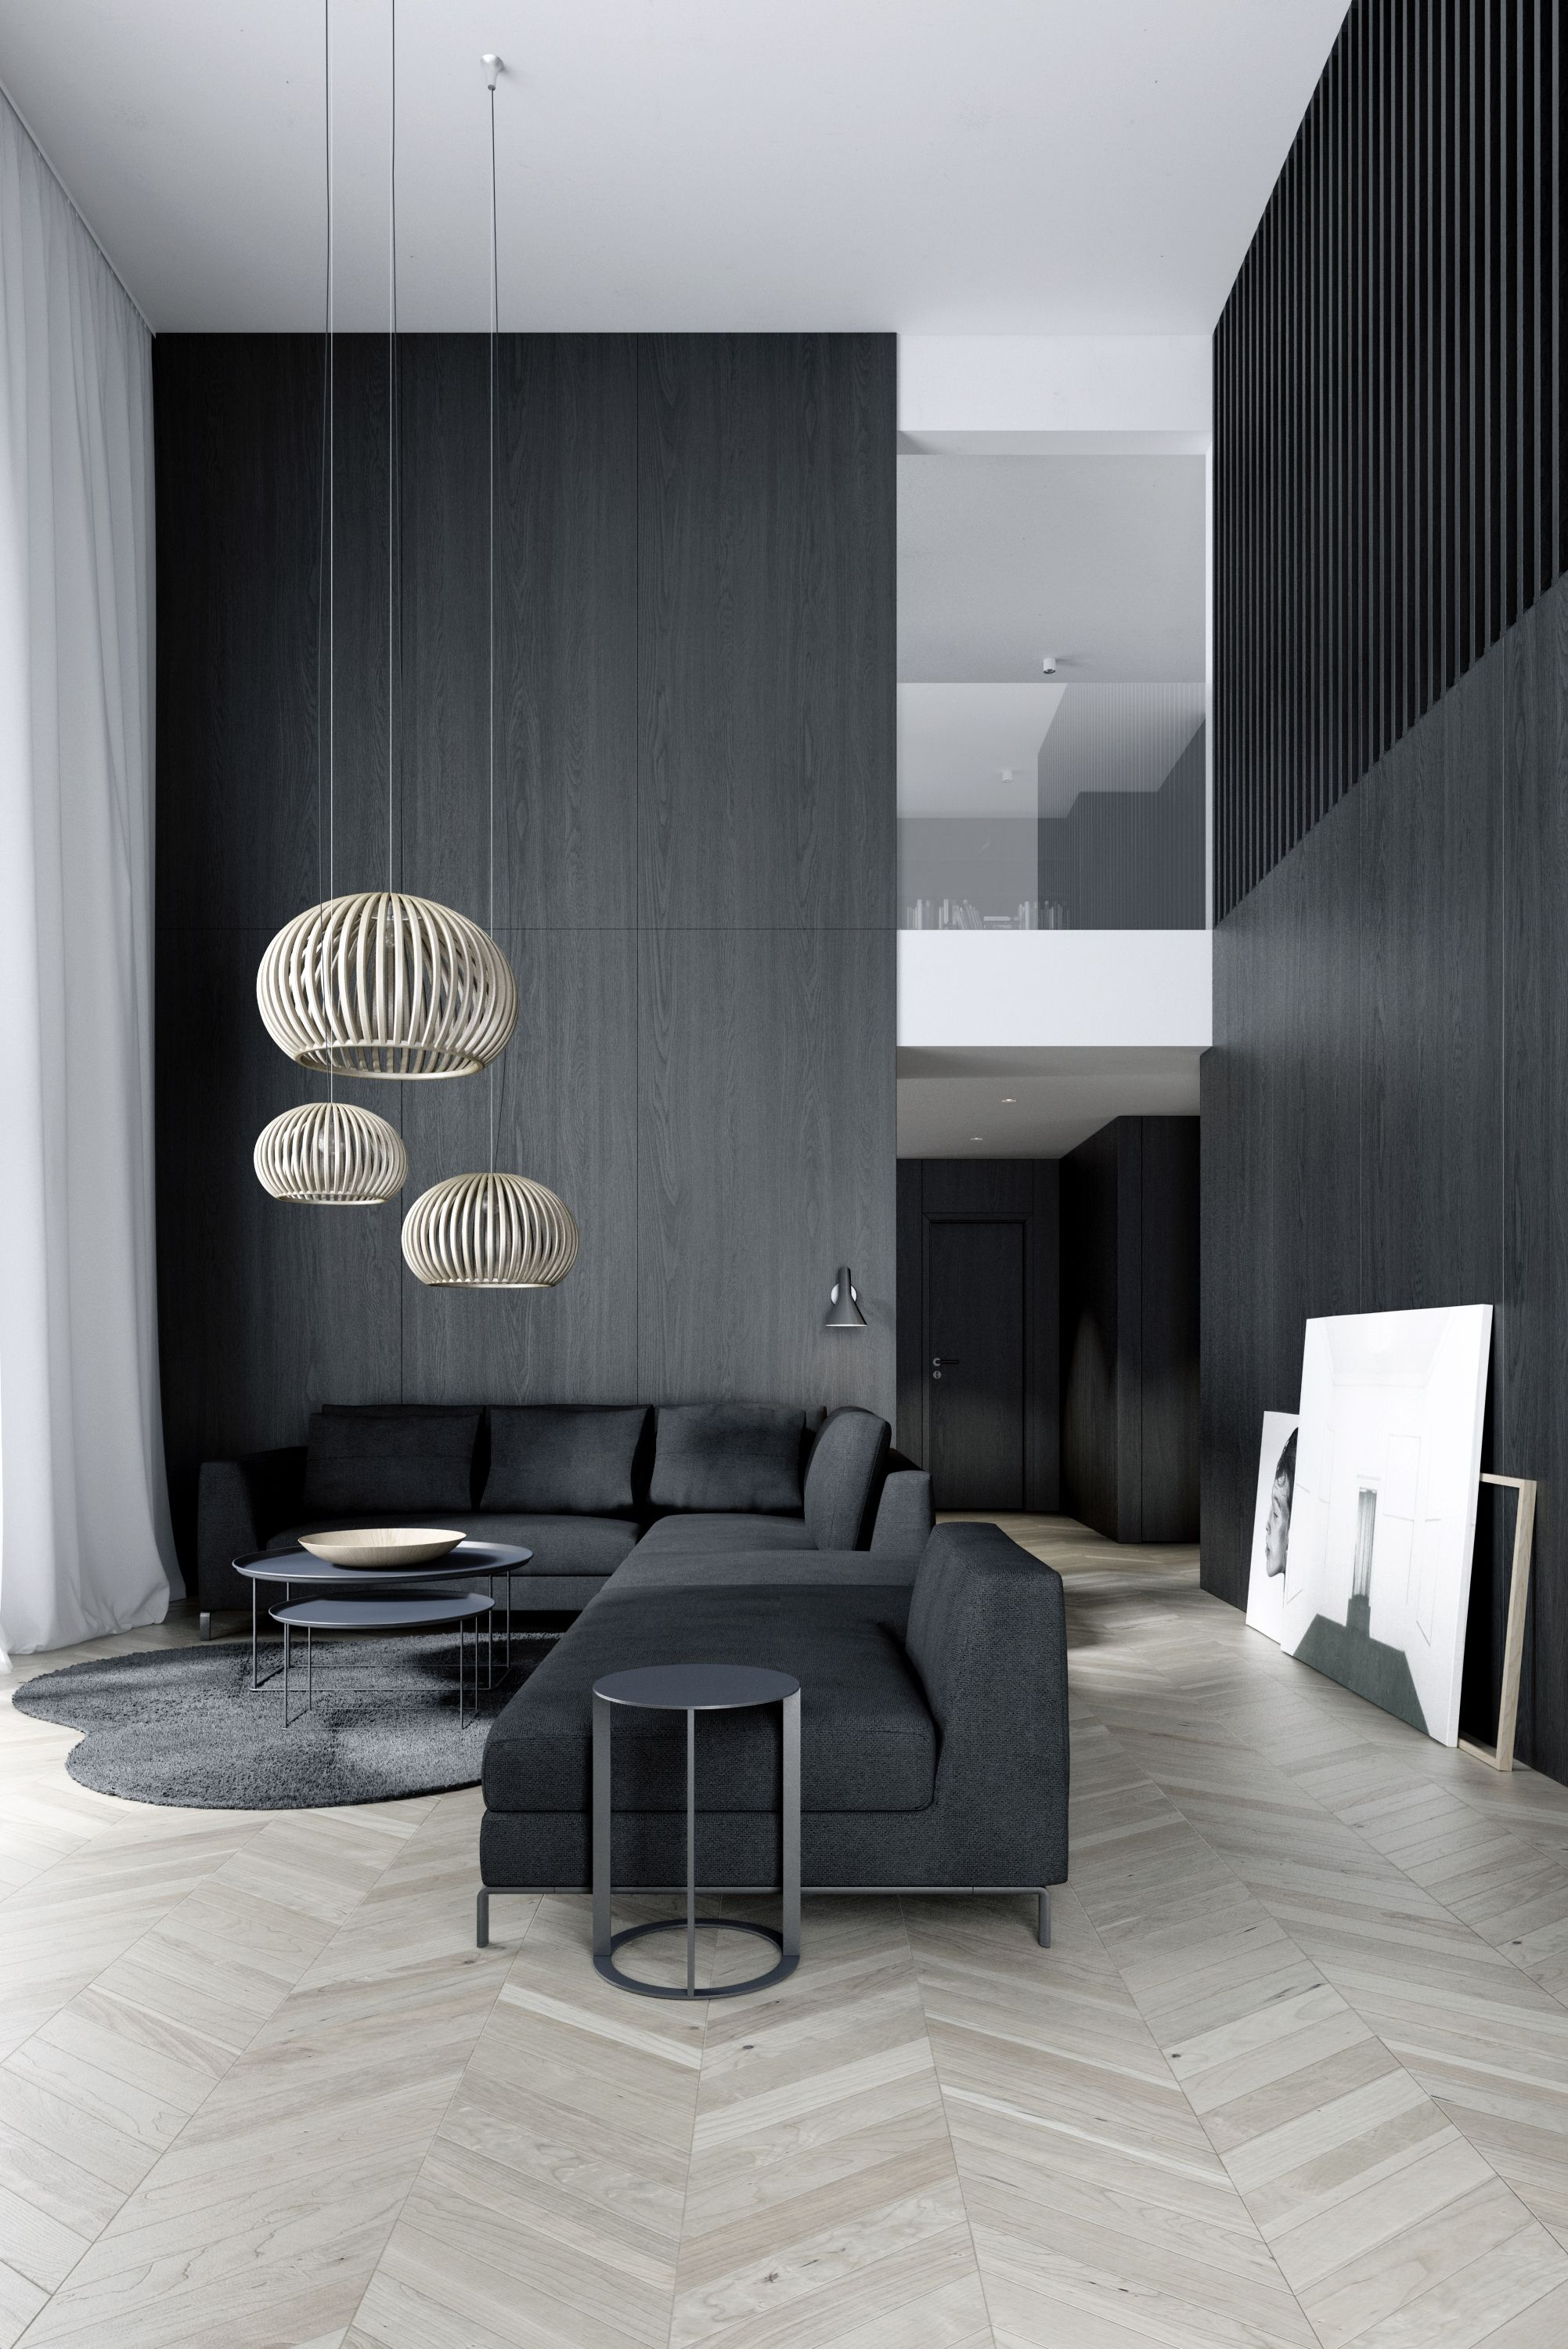 Minimalist Living Room Ideas Inspiration To Make The Most Of Your Space Minimalism Interior Modern Minimalist Living Room Black Living Room